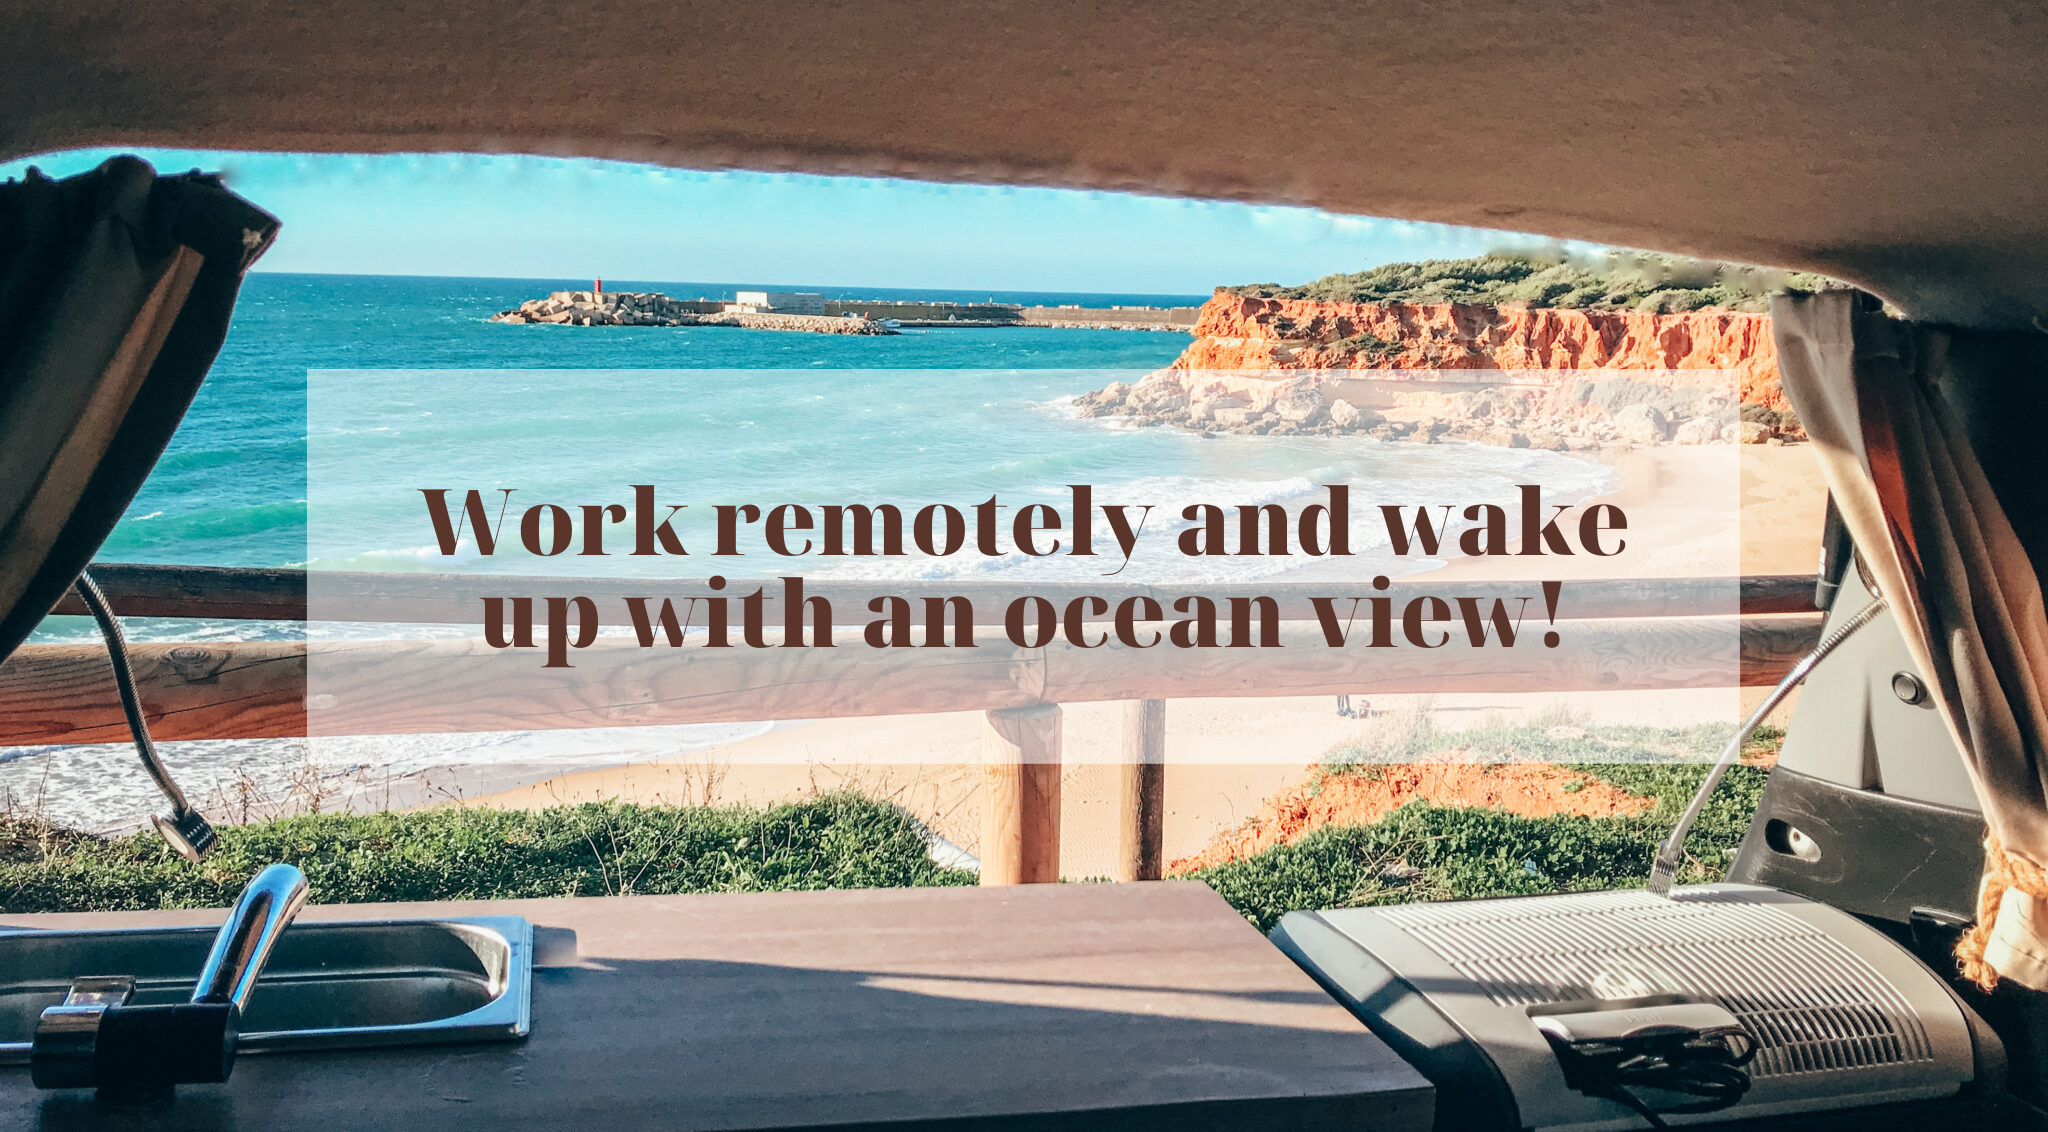 Long-term campervan rental – work remotely in Spain or Portugal